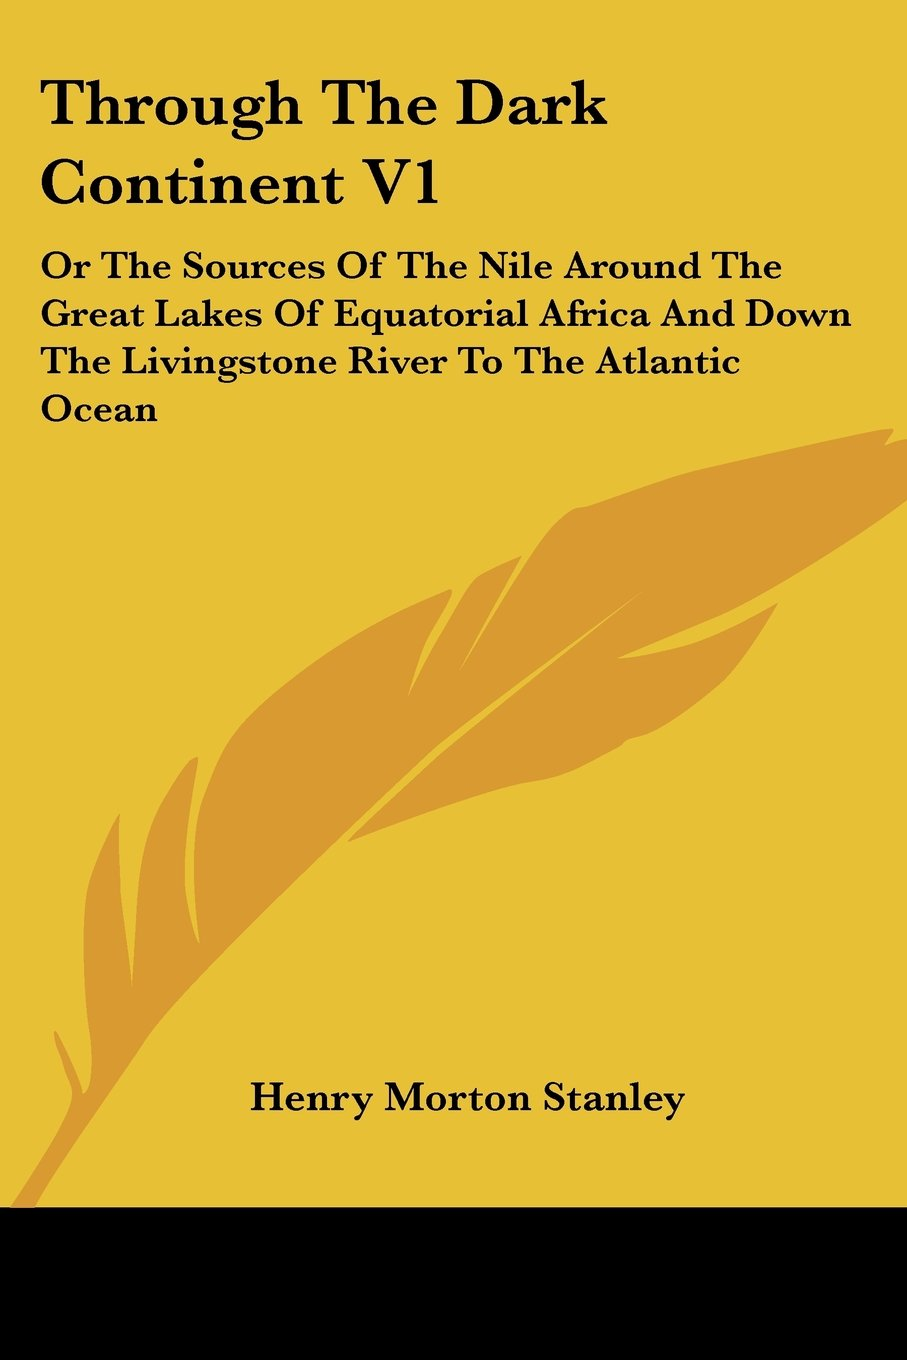 Read Online Through the Dark Continent V1: Or the Sources of the Nile Around the Great Lakes of Equatorial Africa and Down the Livingstone River to the Atlantic pdf